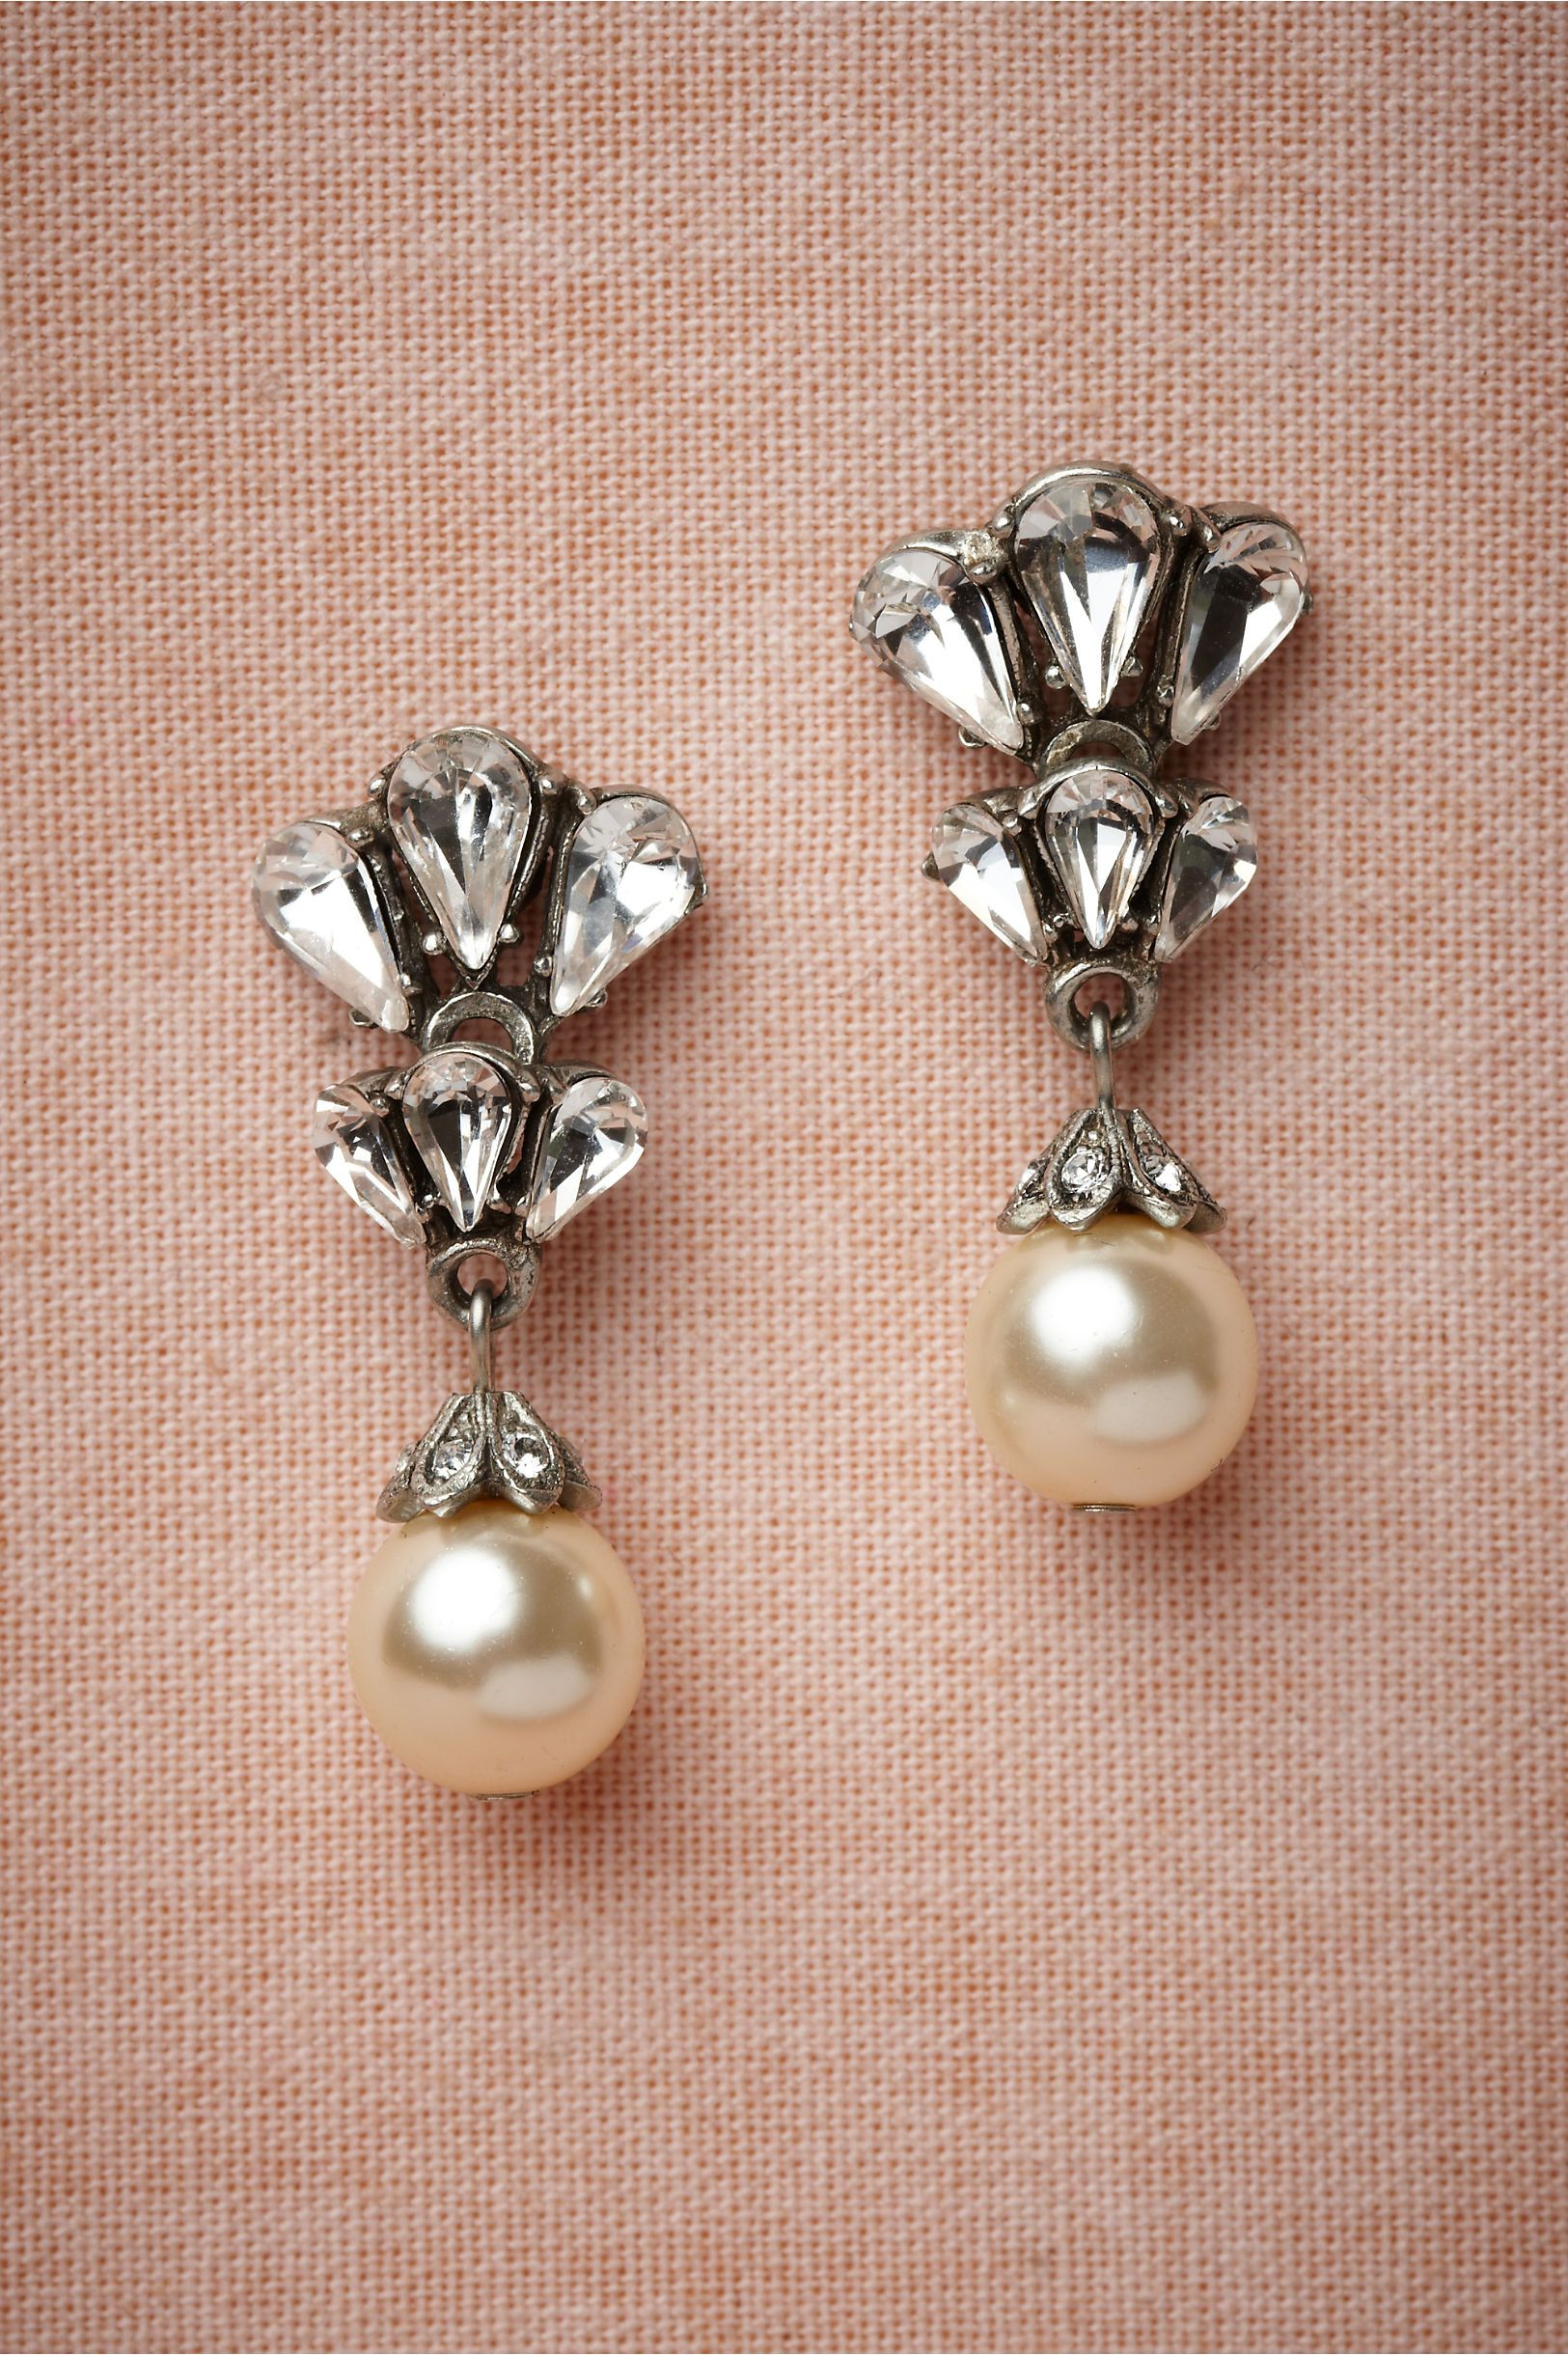 stud single willow johnlewis online yellow buylondon main rsp road london and pdp gold burlington earrings pearl at